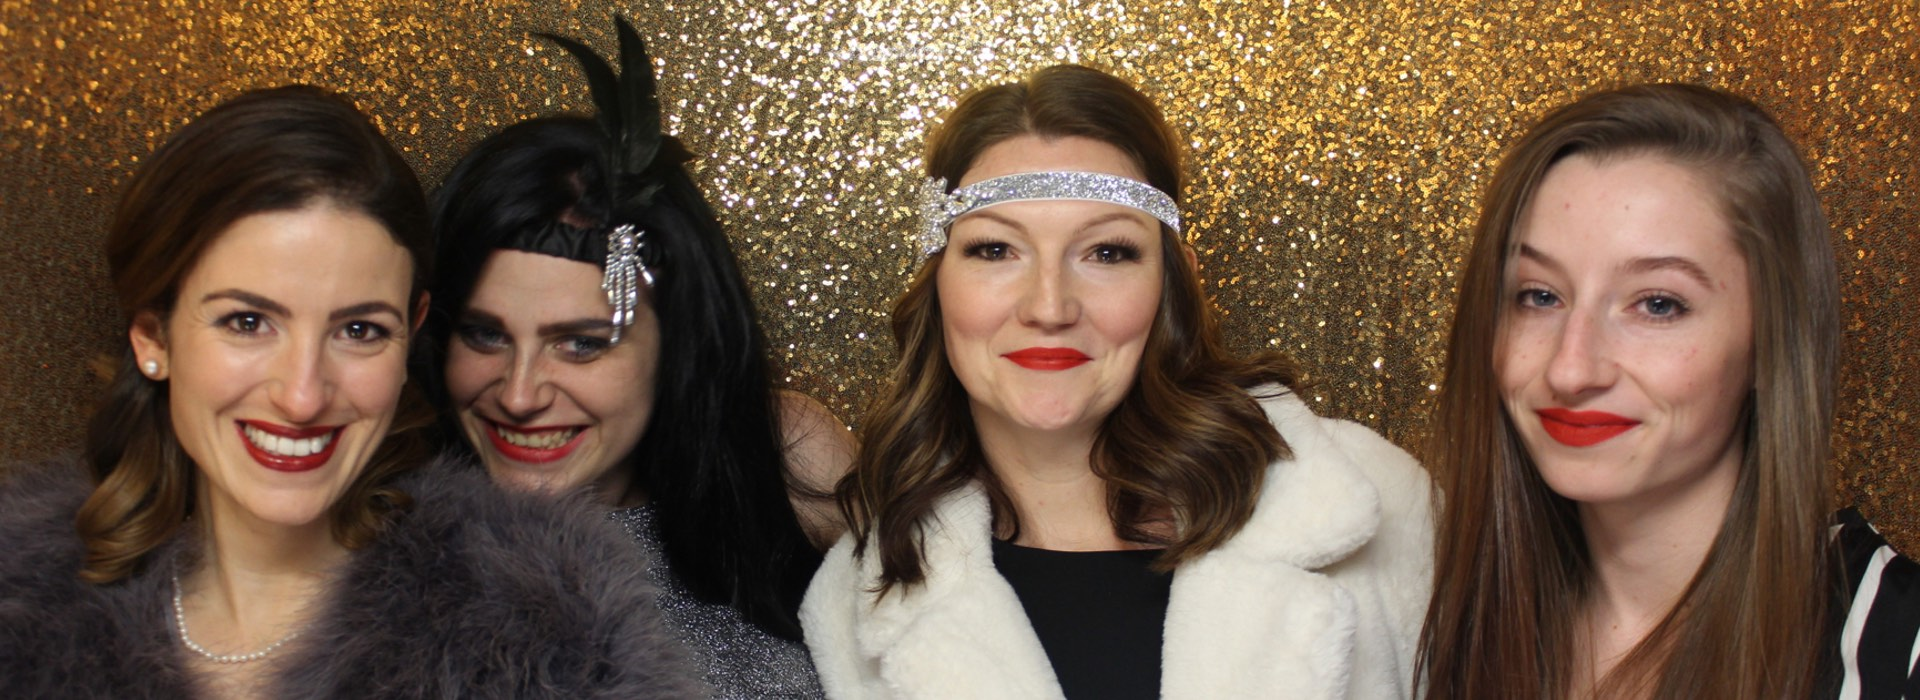 Party Photo Booth Picture Header